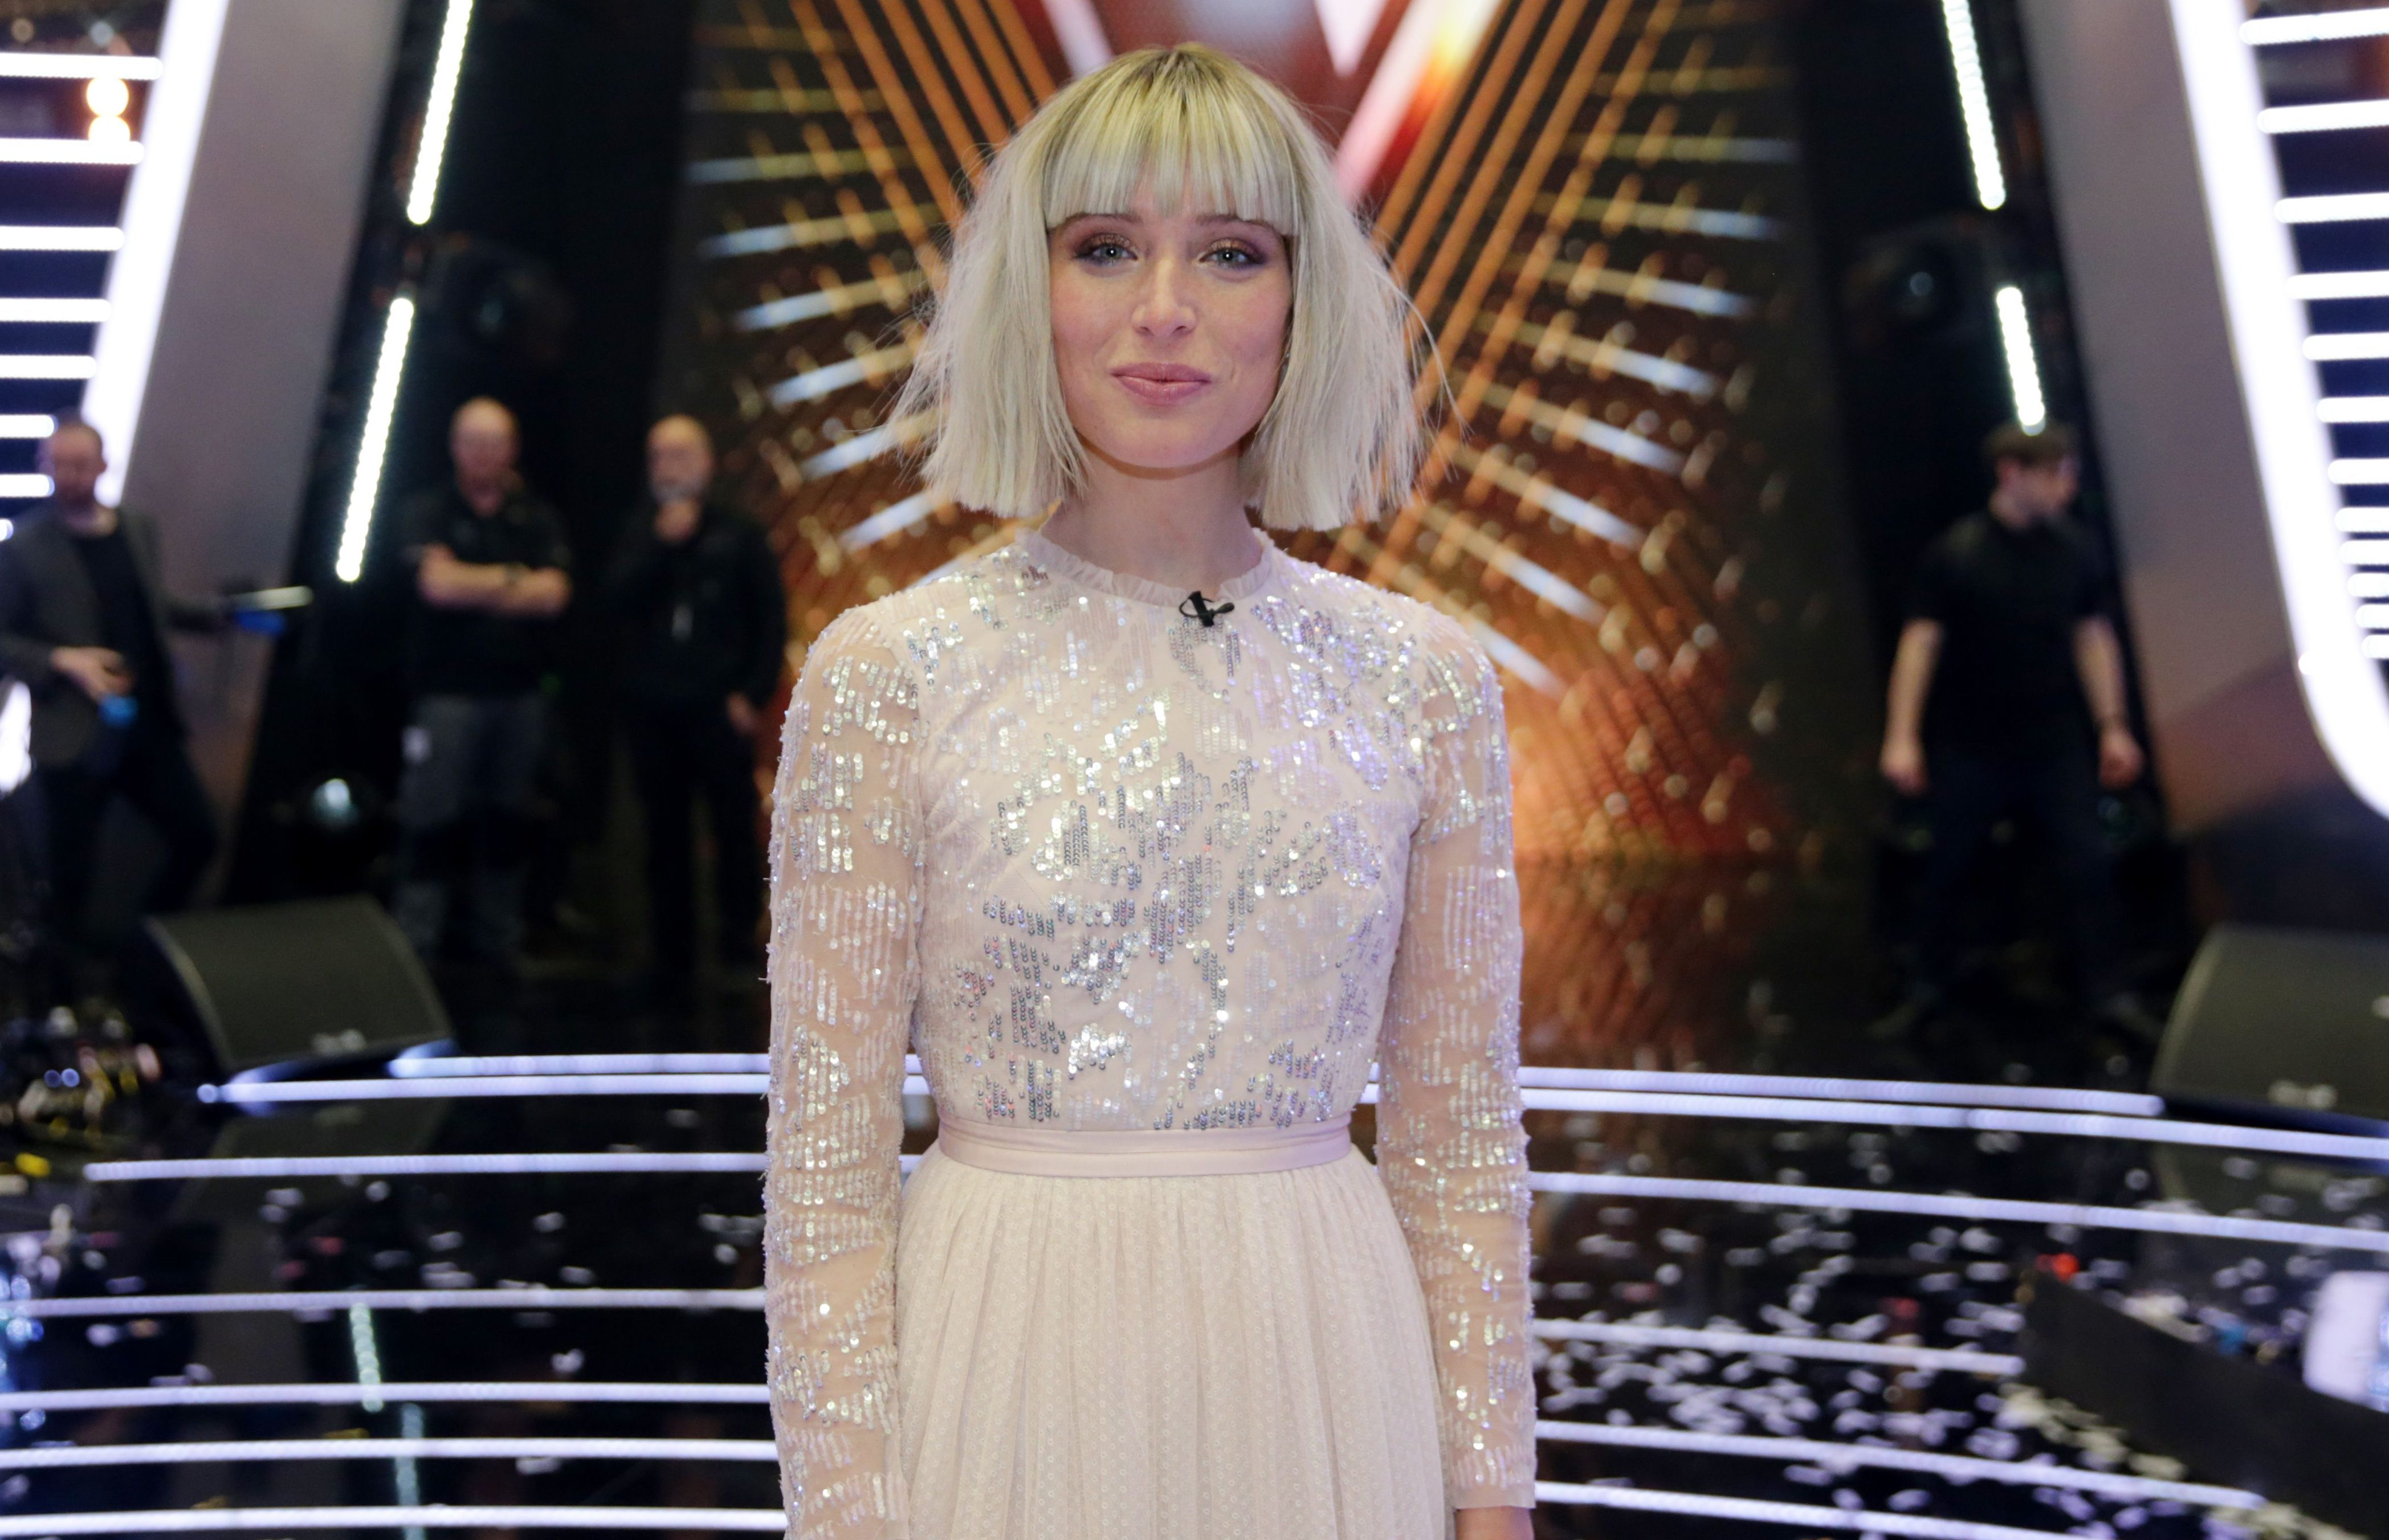 What does The Voice UK 2019 winner Molly Hocking get?